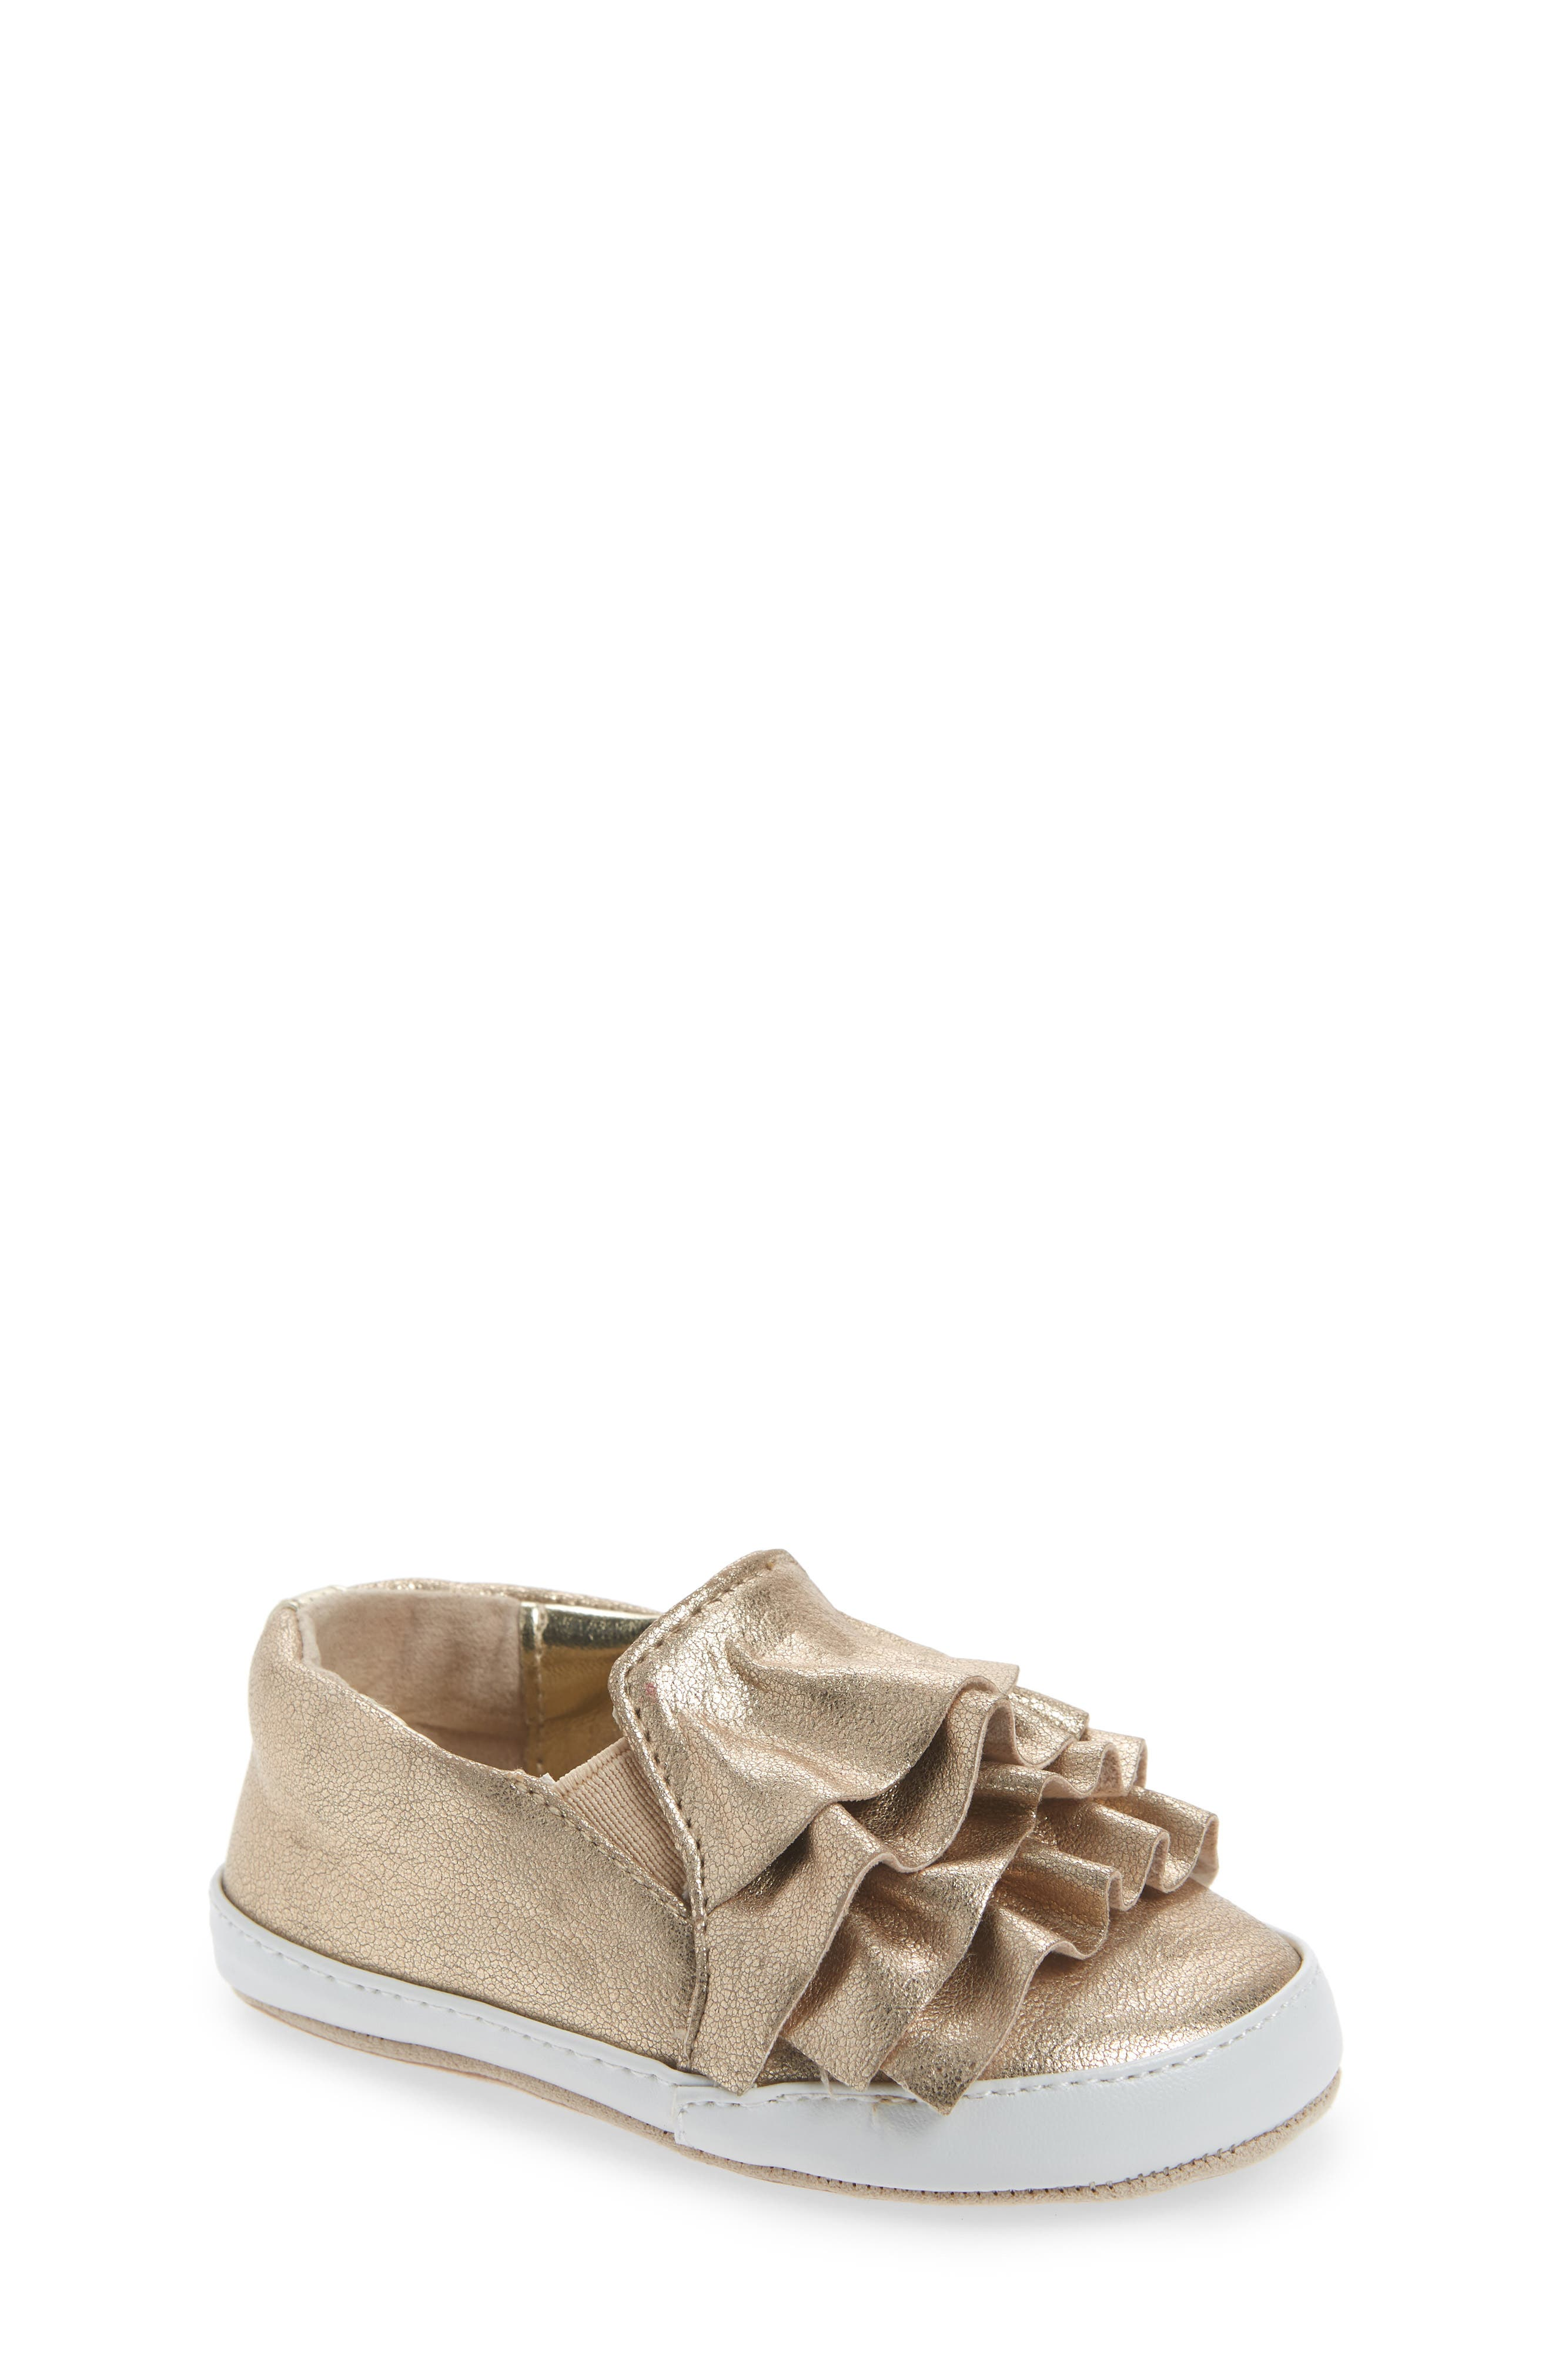 Ruffle Metallic Kam Slip-On Sneaker,                             Main thumbnail 1, color,                             Gold